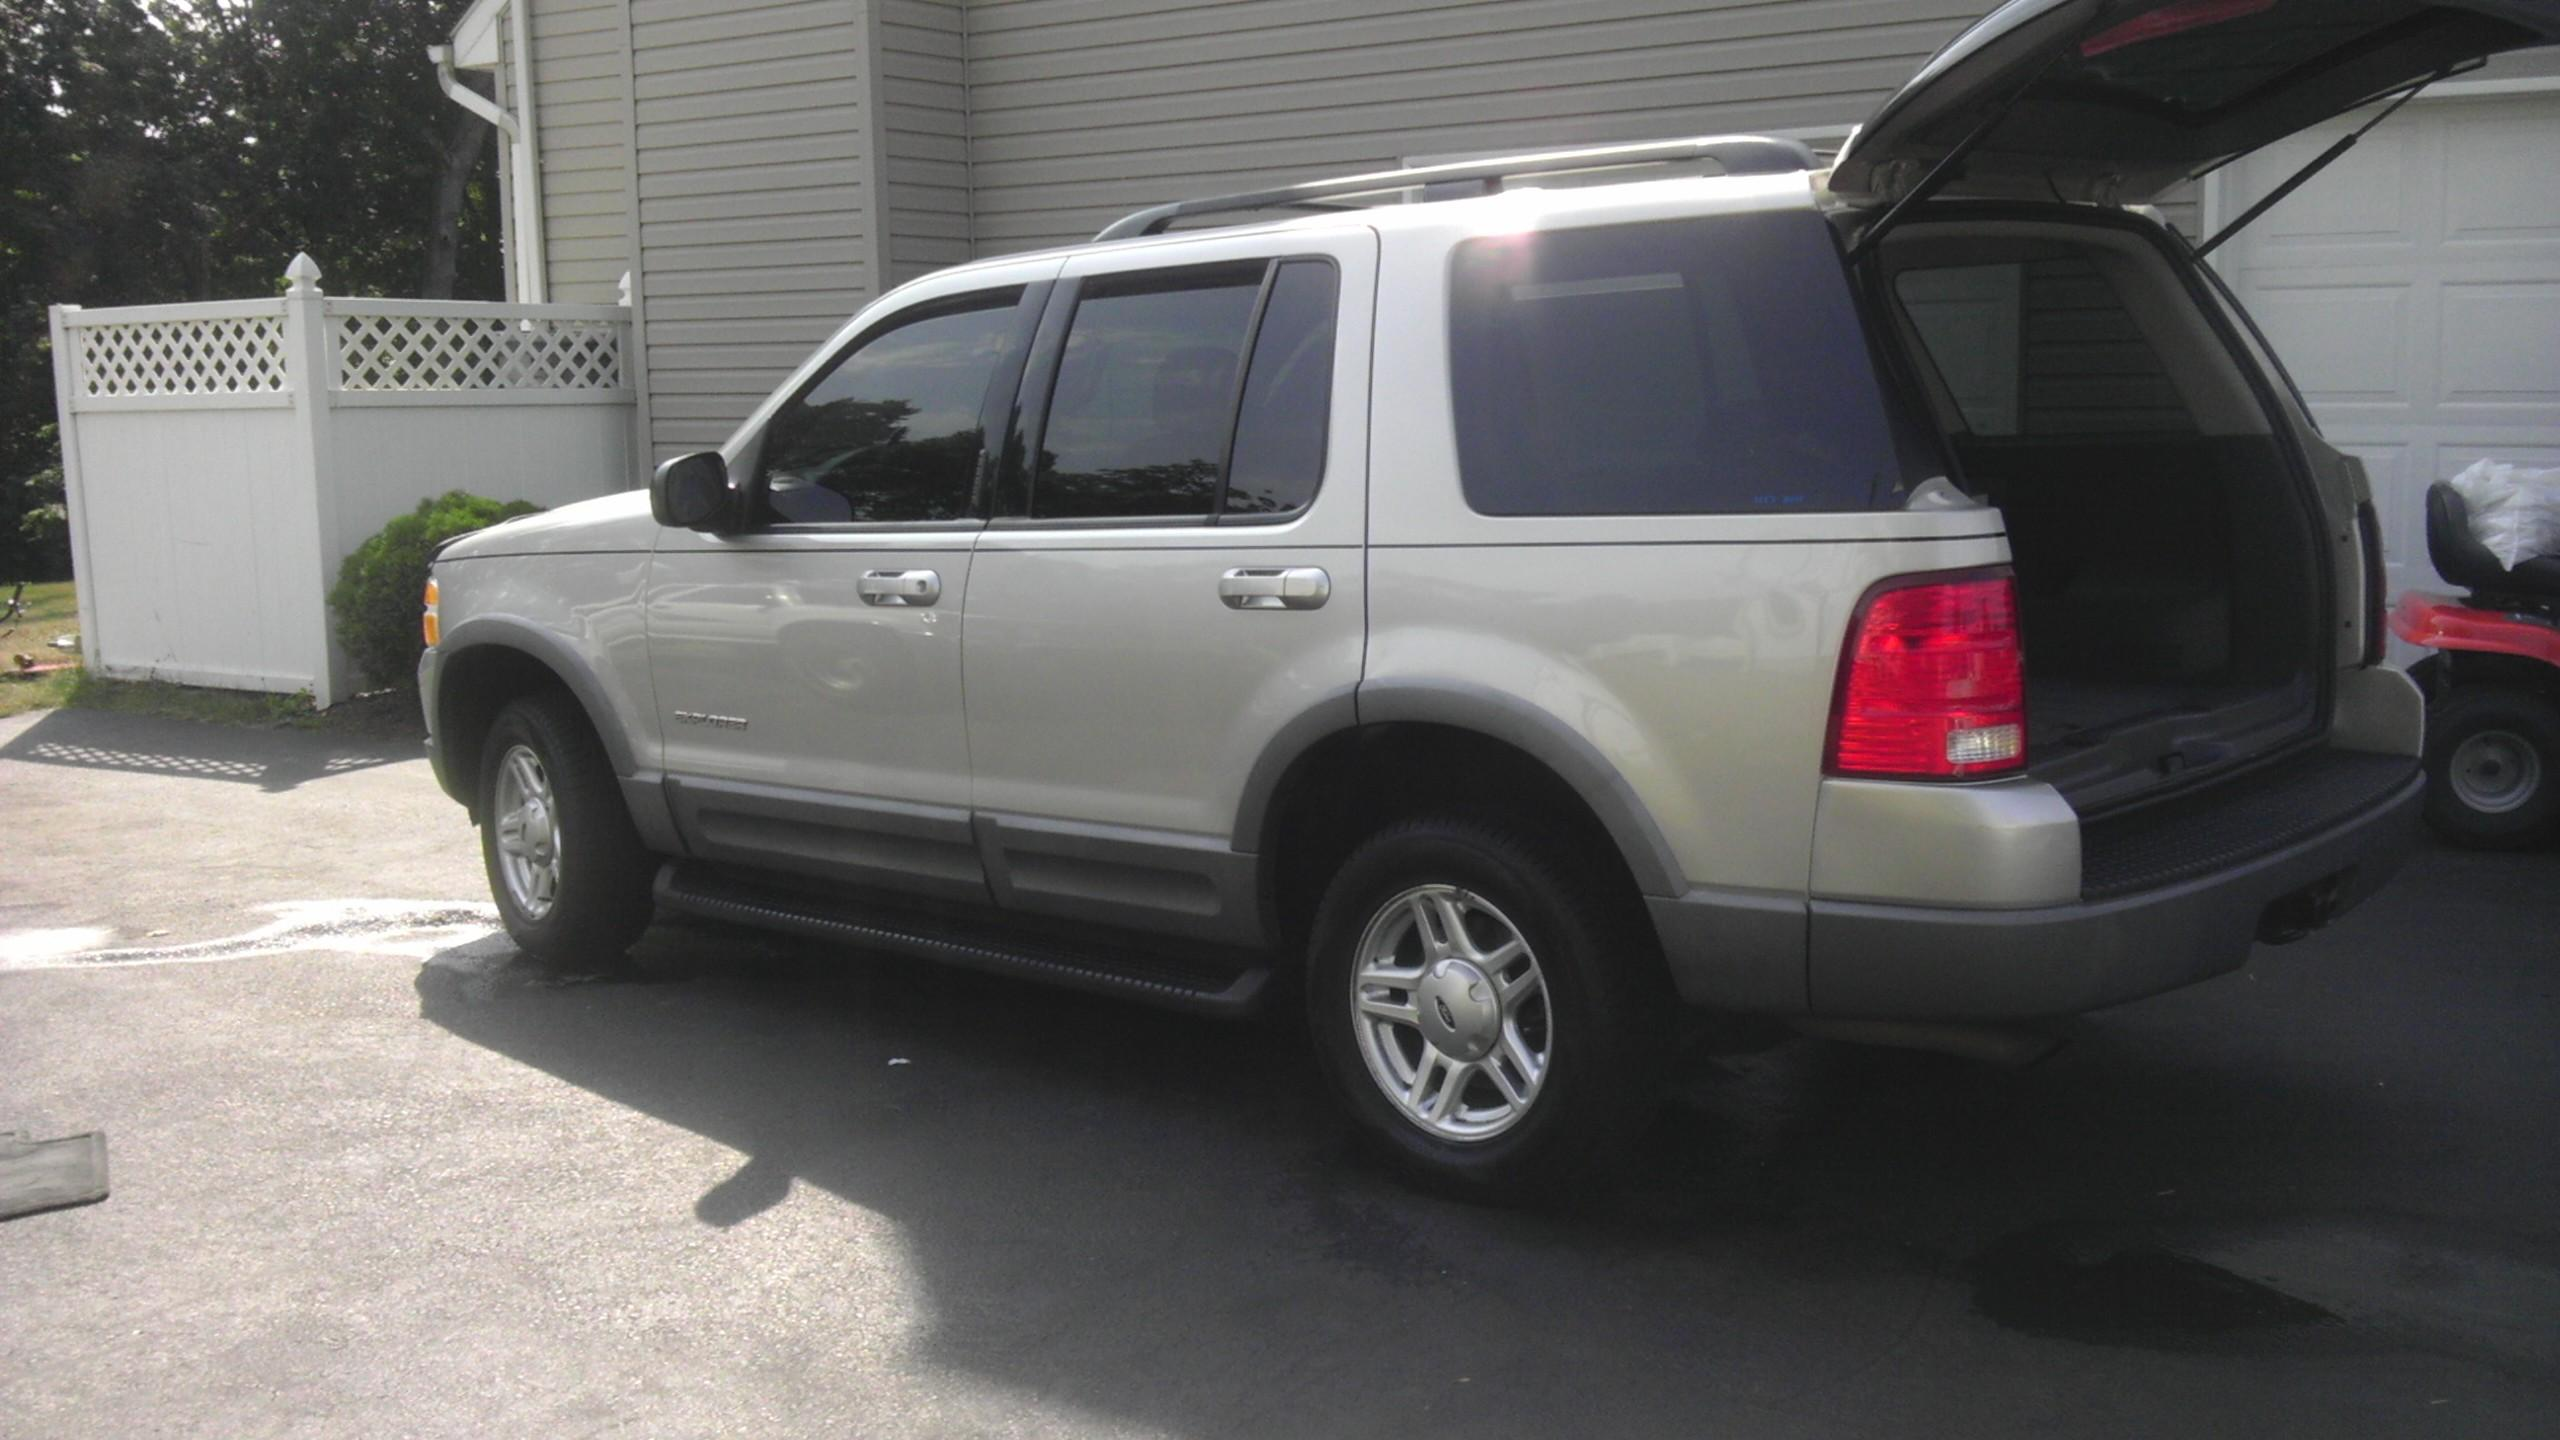 STREETDOCTOR 2002 Ford Explorer